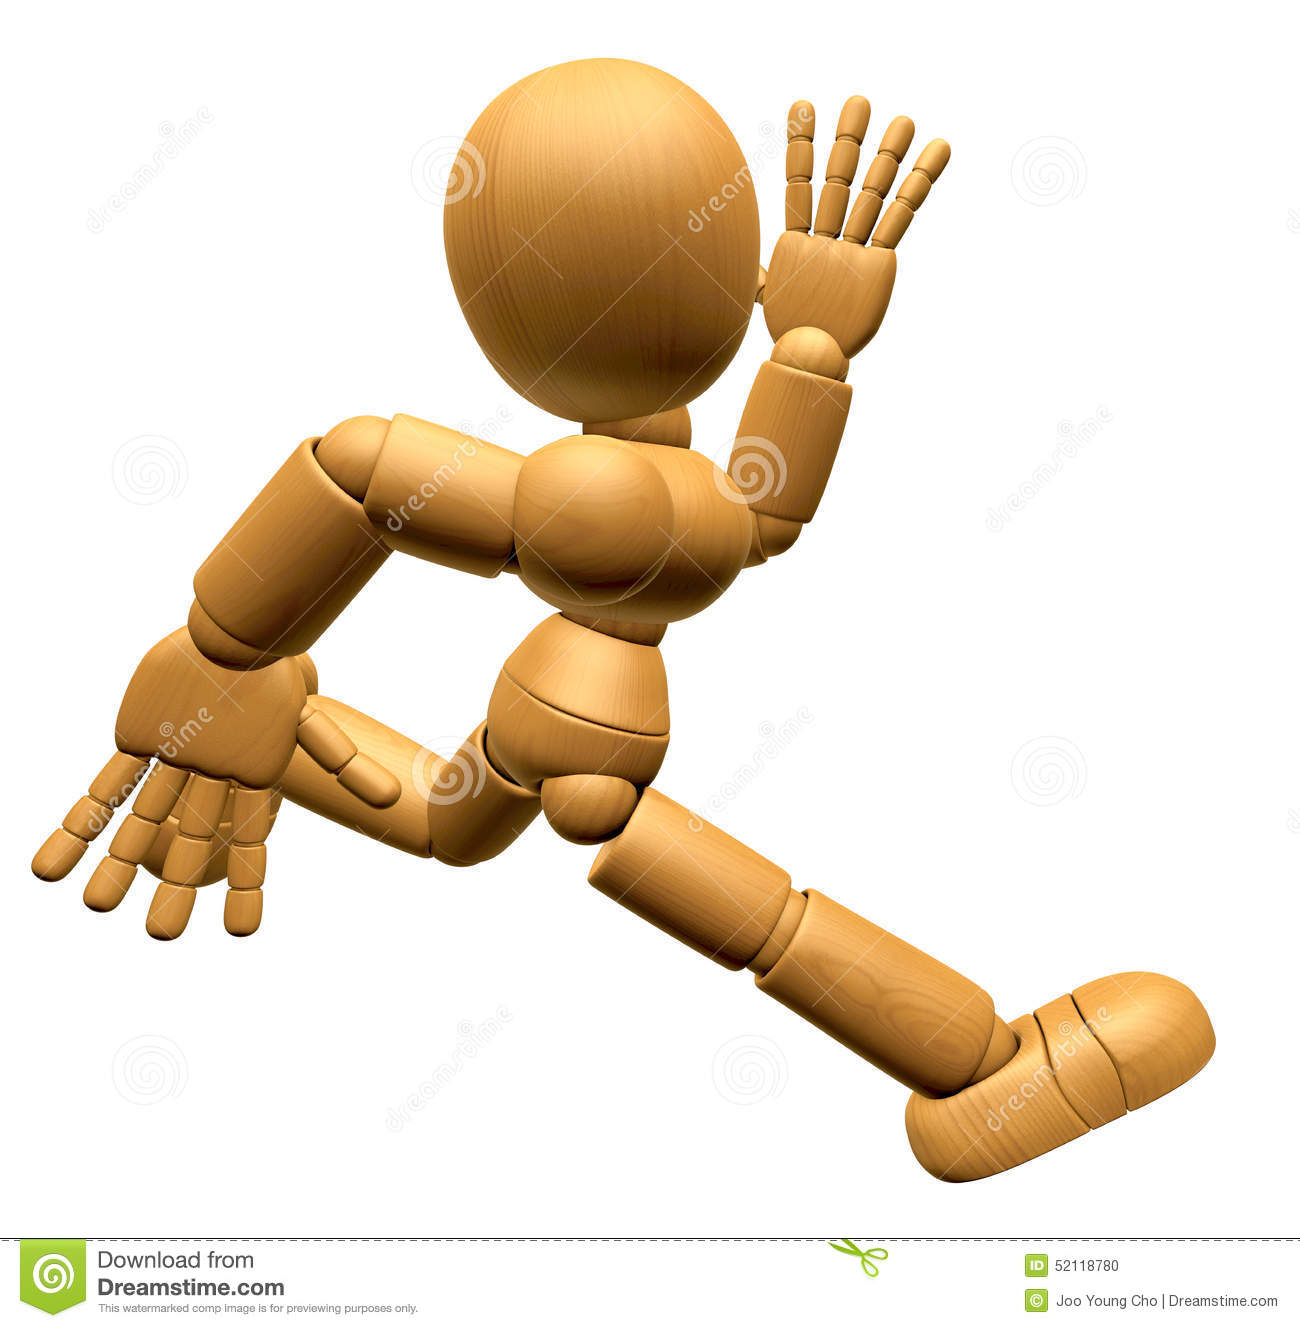 3D Wood Doll Mascot On Running. 3D Wooden Ball Jointed Doll Char.